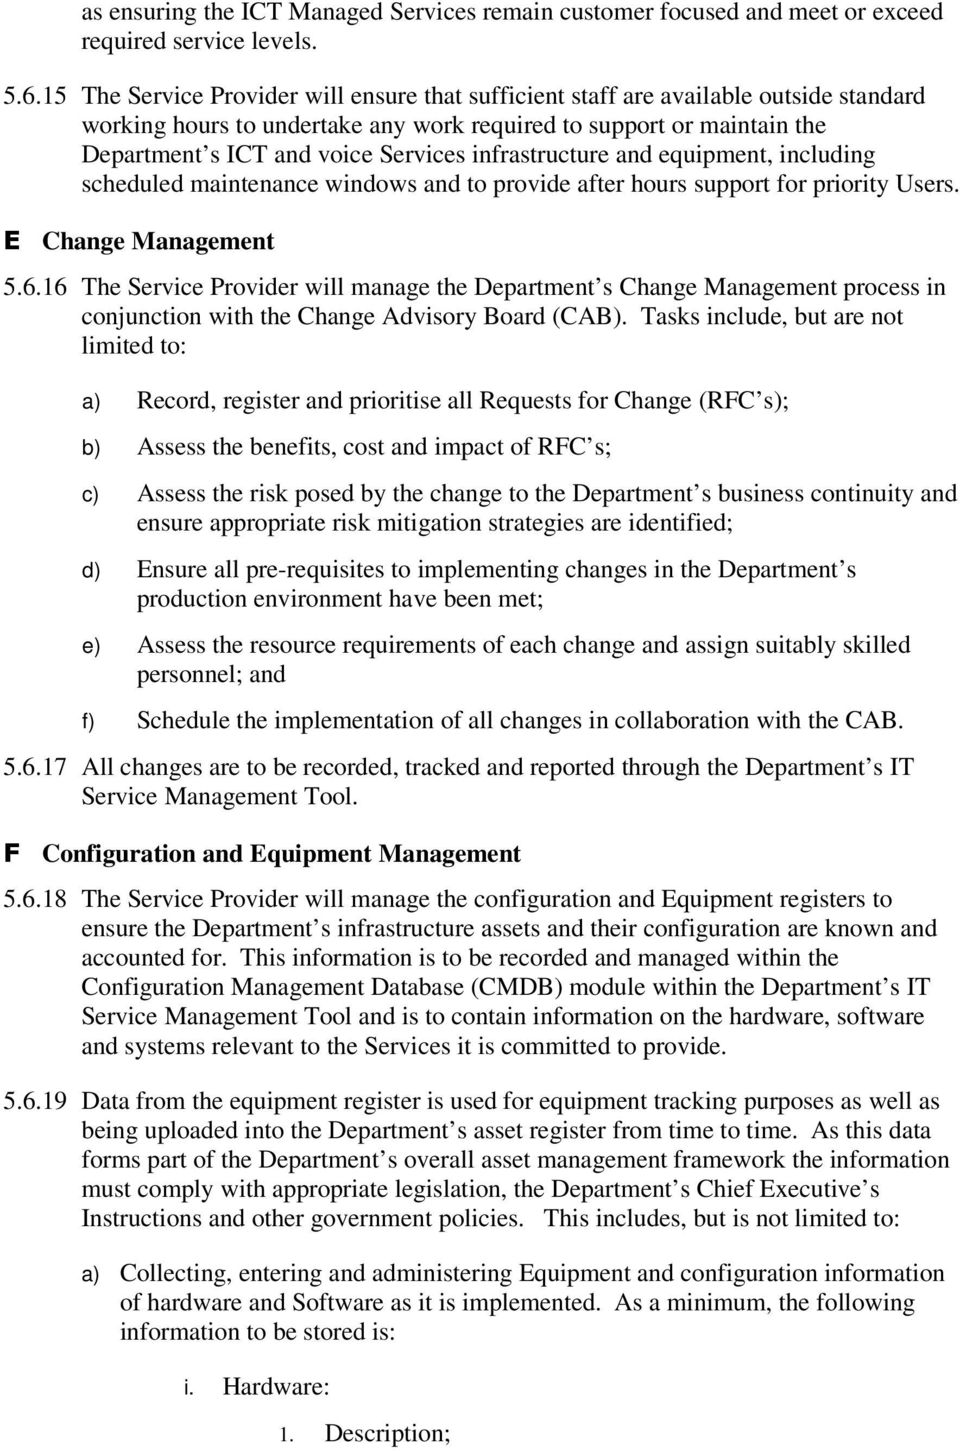 infrastructure and equipment, including scheduled maintenance windows and to provide after hours support for priority Users. E Change Management 5.6.